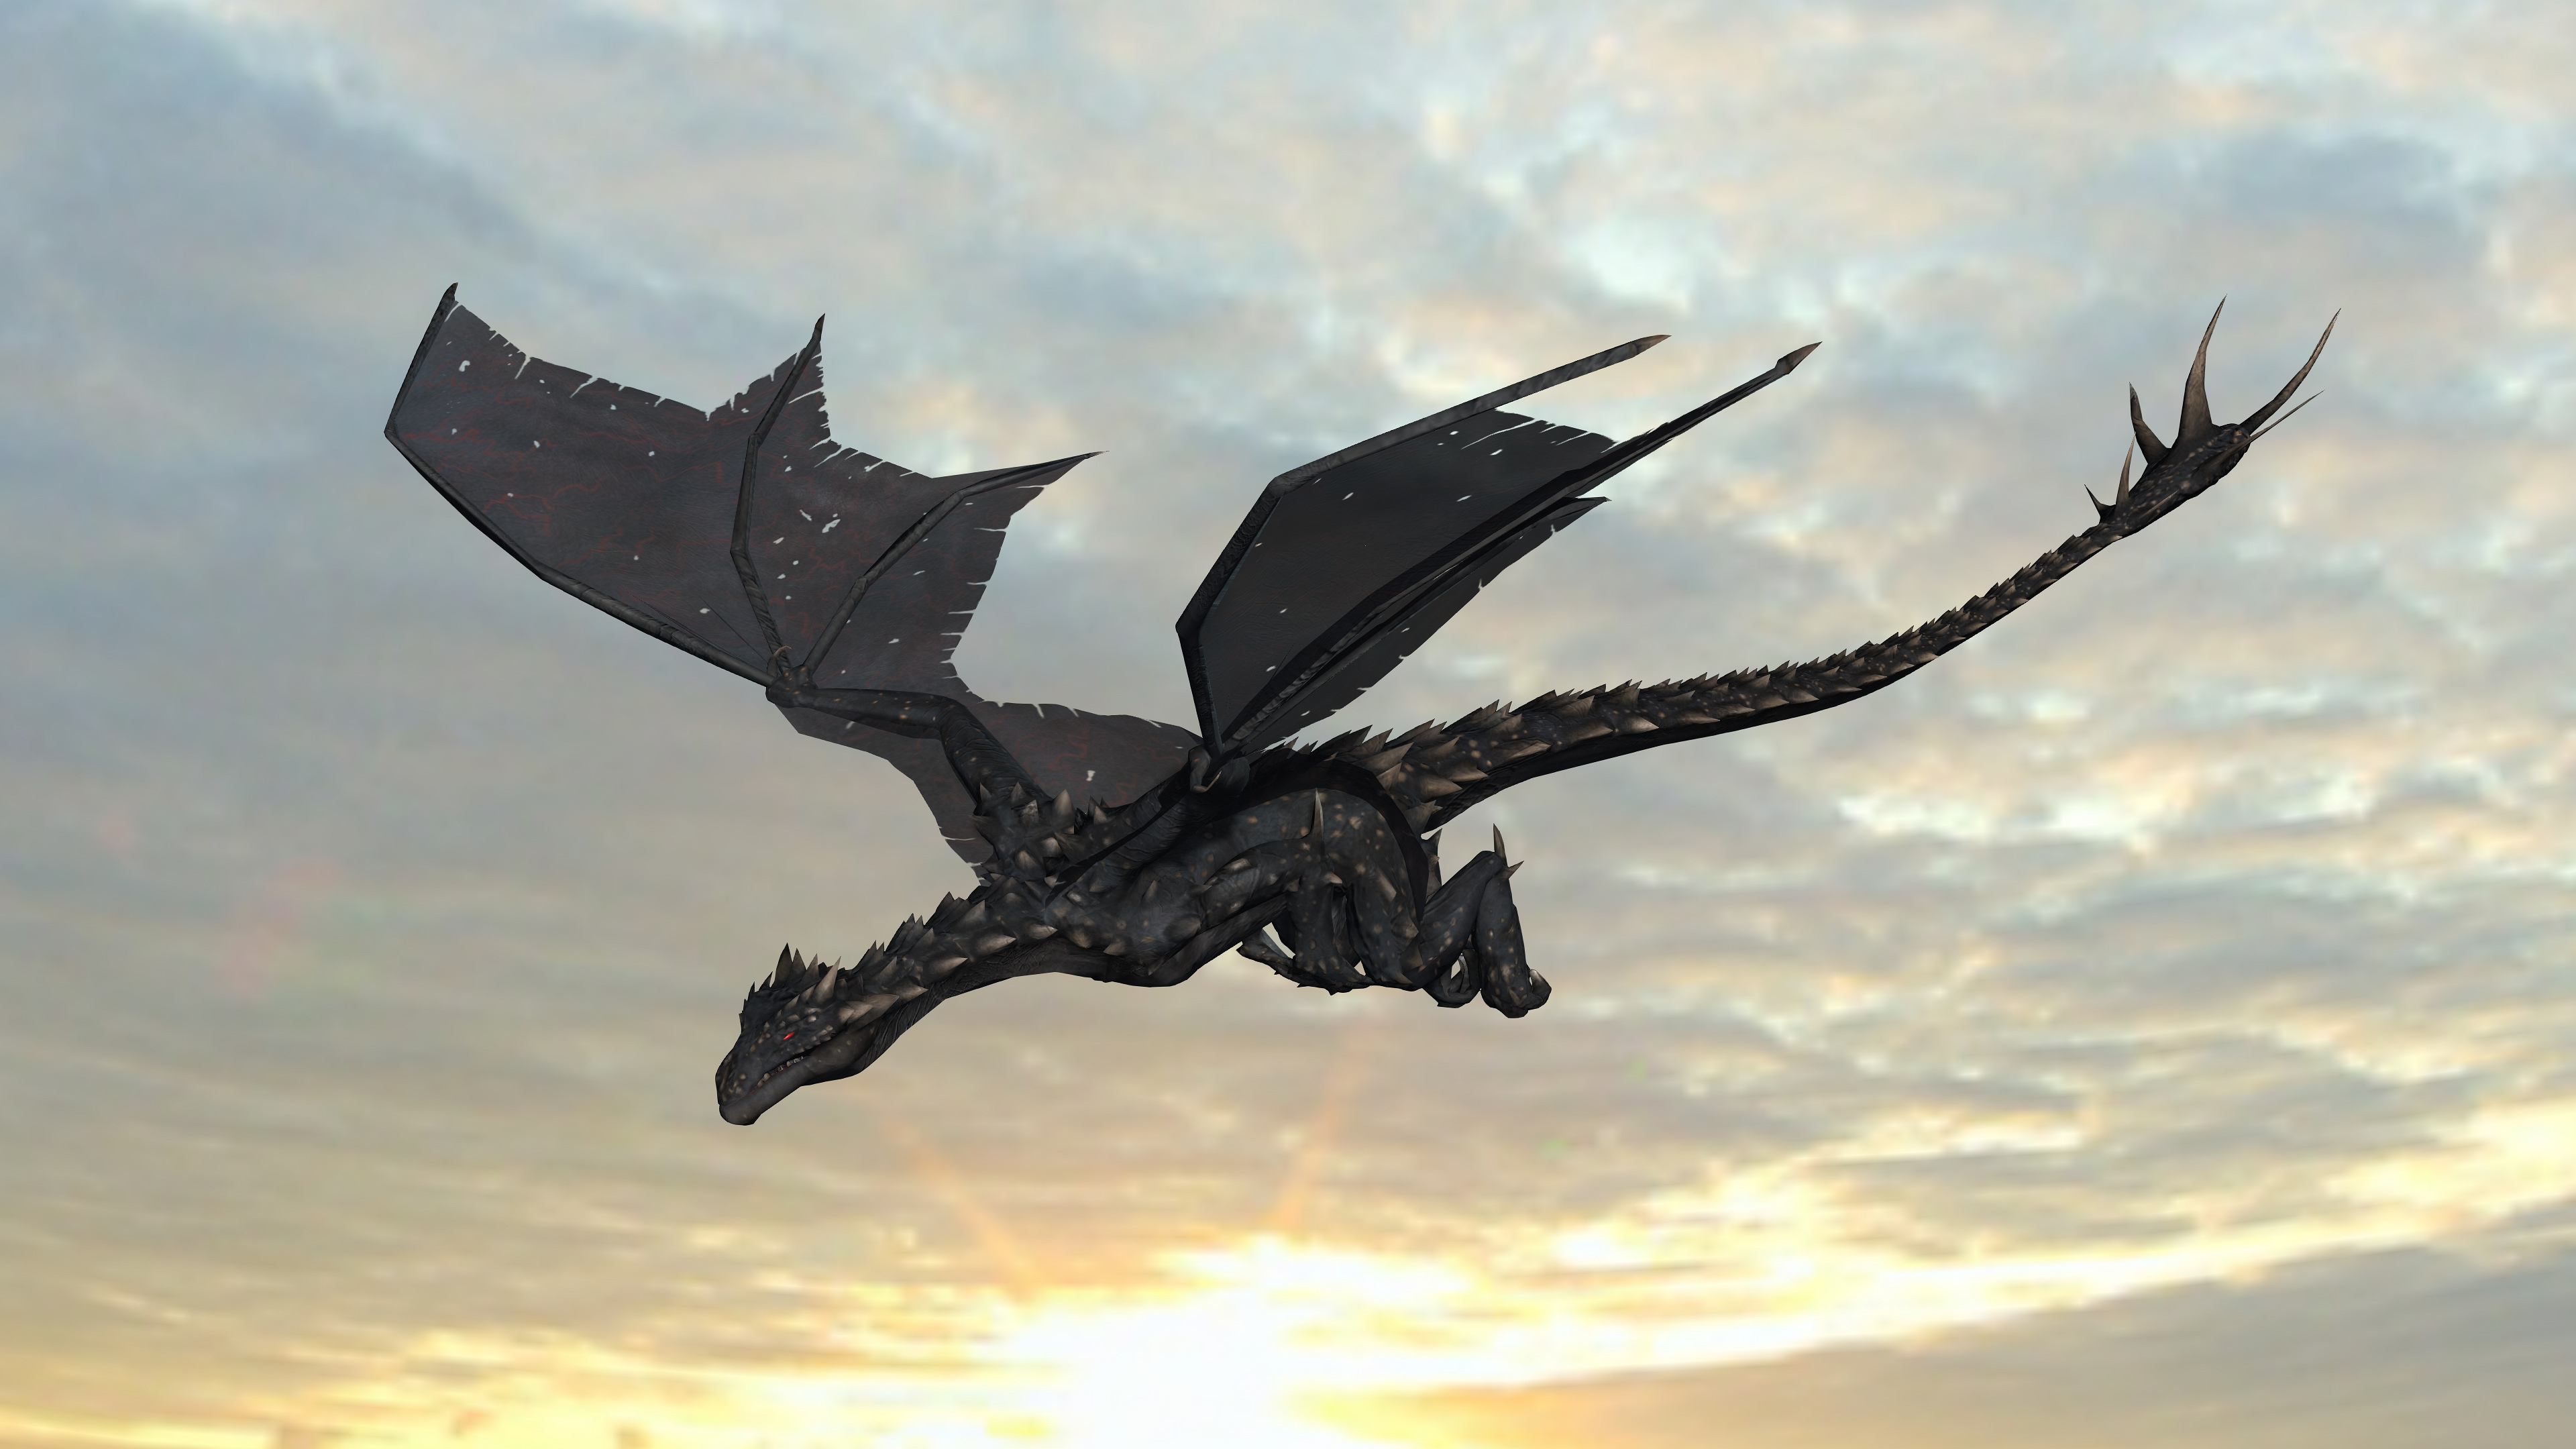 Mythological Dragons: Dragons Of Greek Mythology